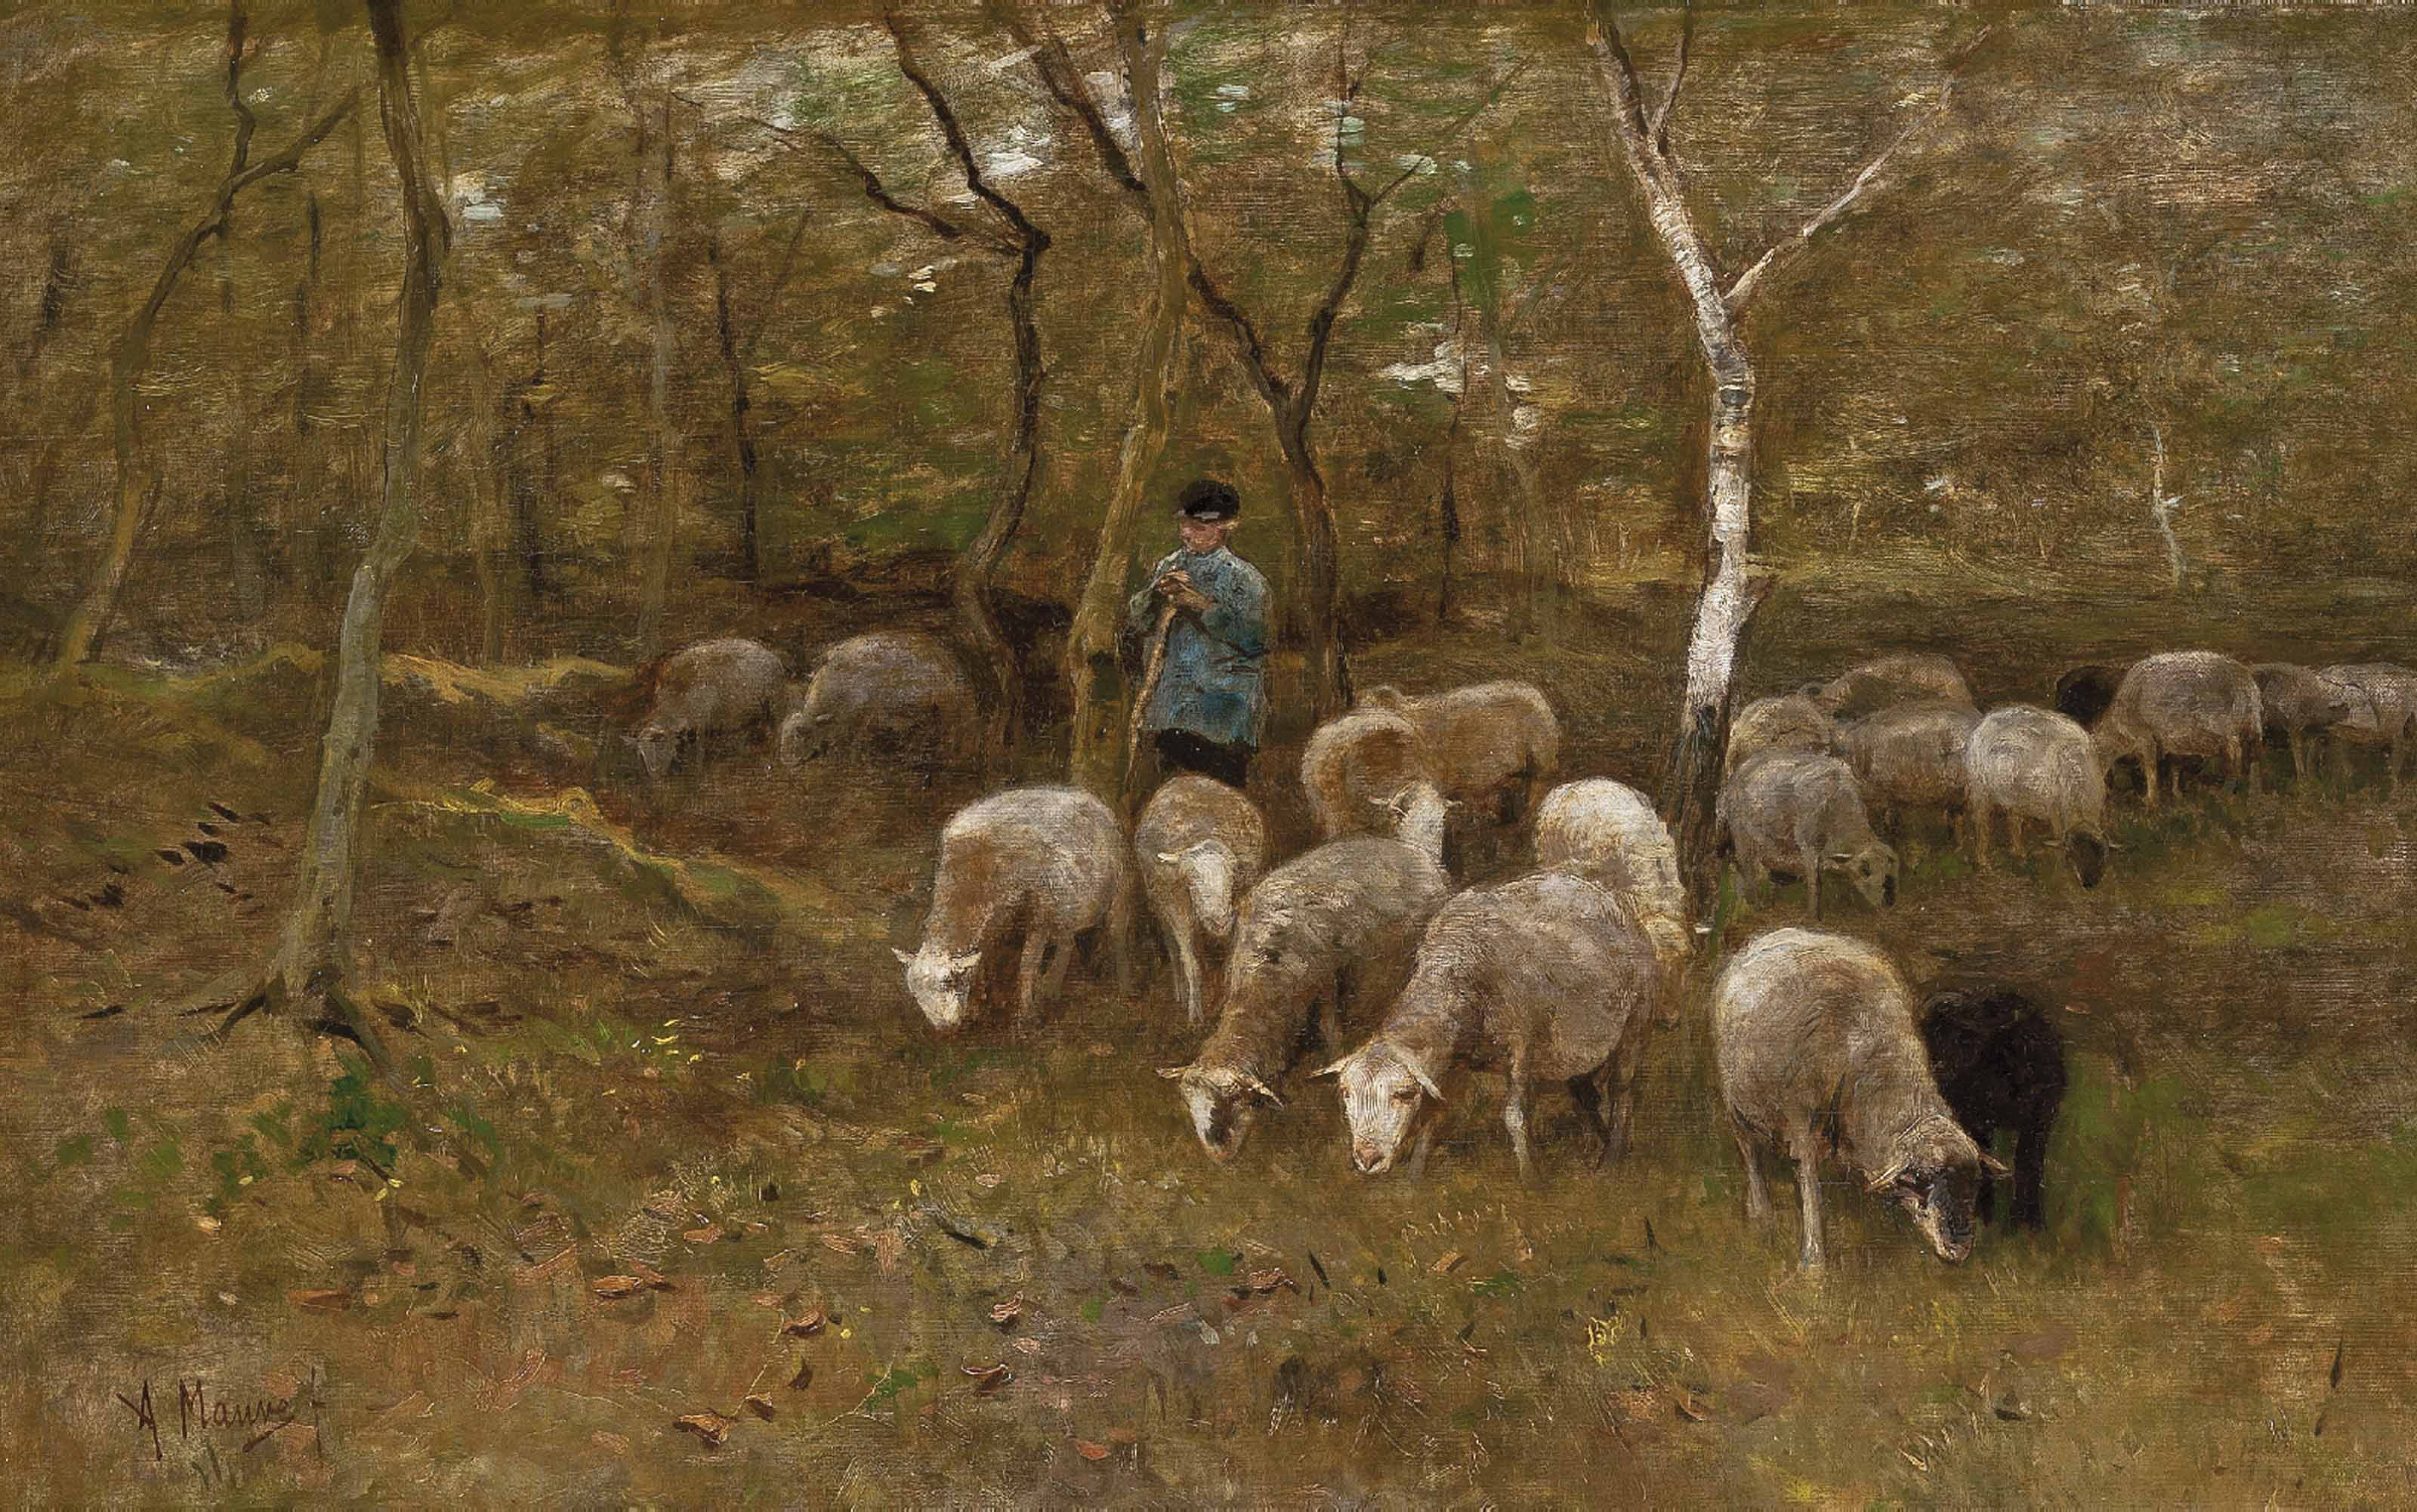 A shepherd with his flock in the woods